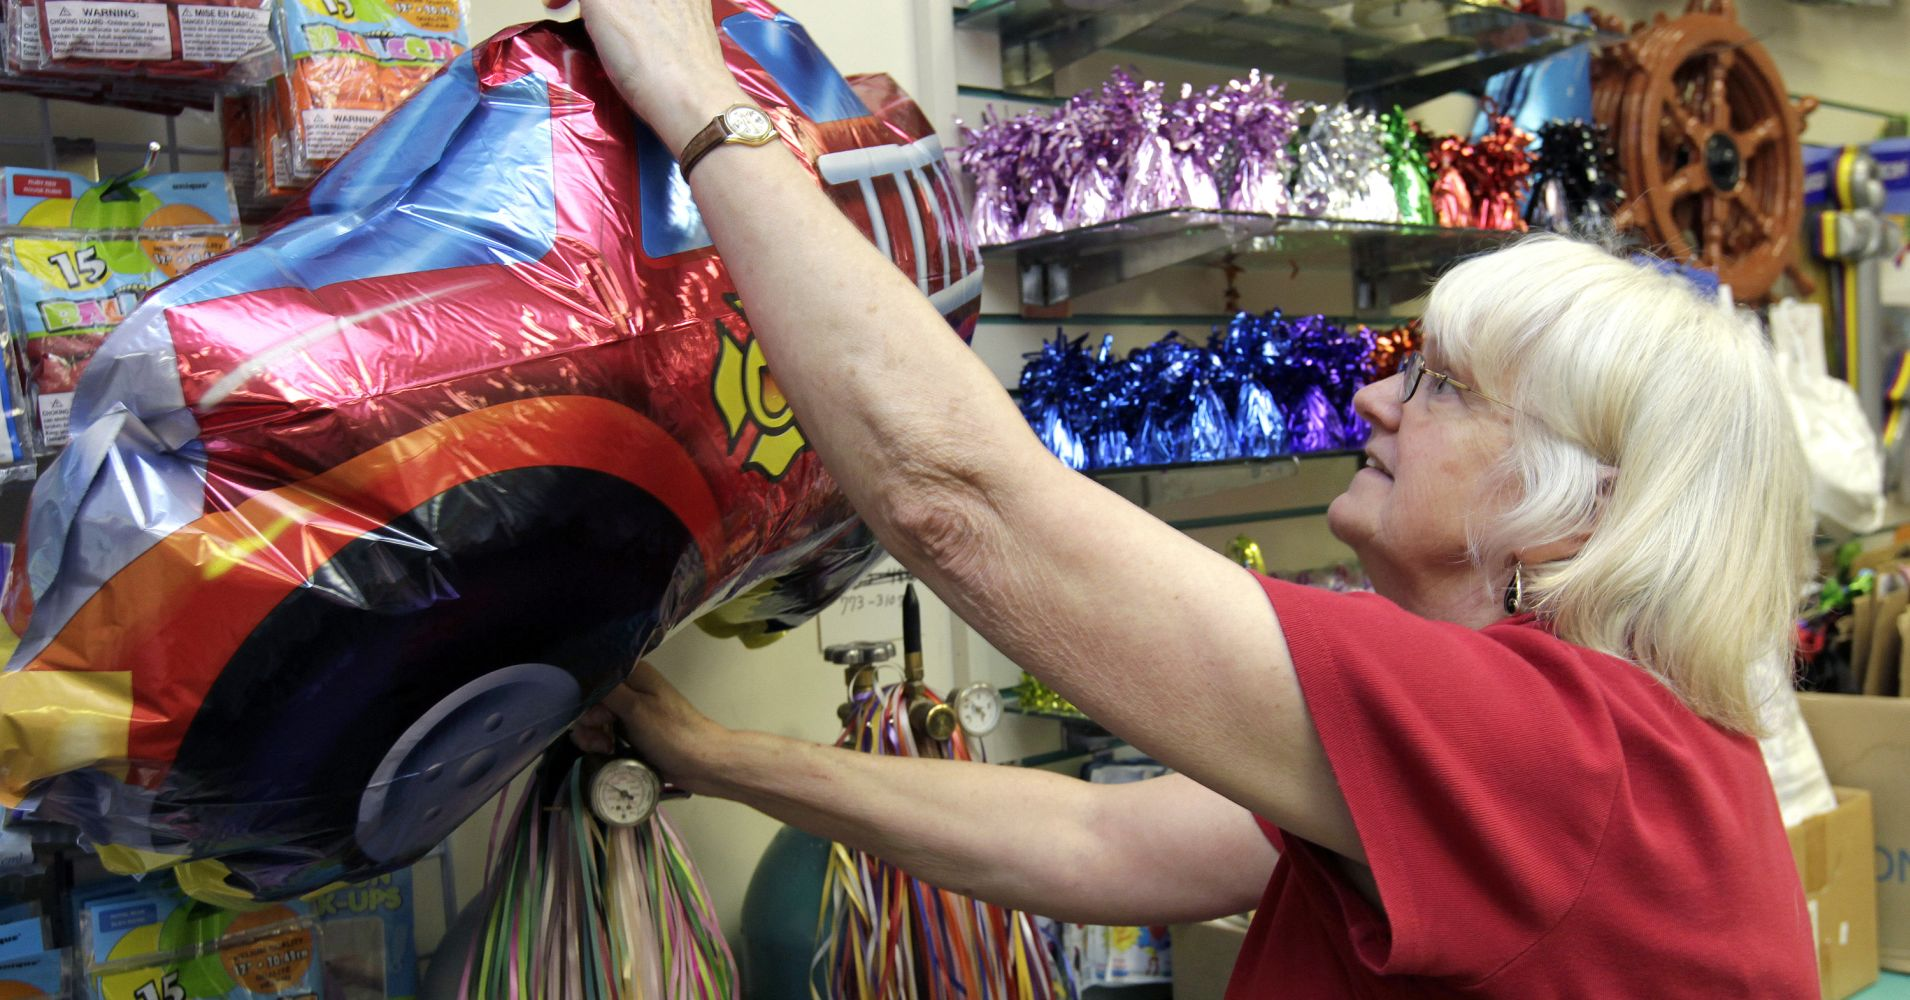 A woman fills a helium balloon for a customer in Raleigh, North Carolina.